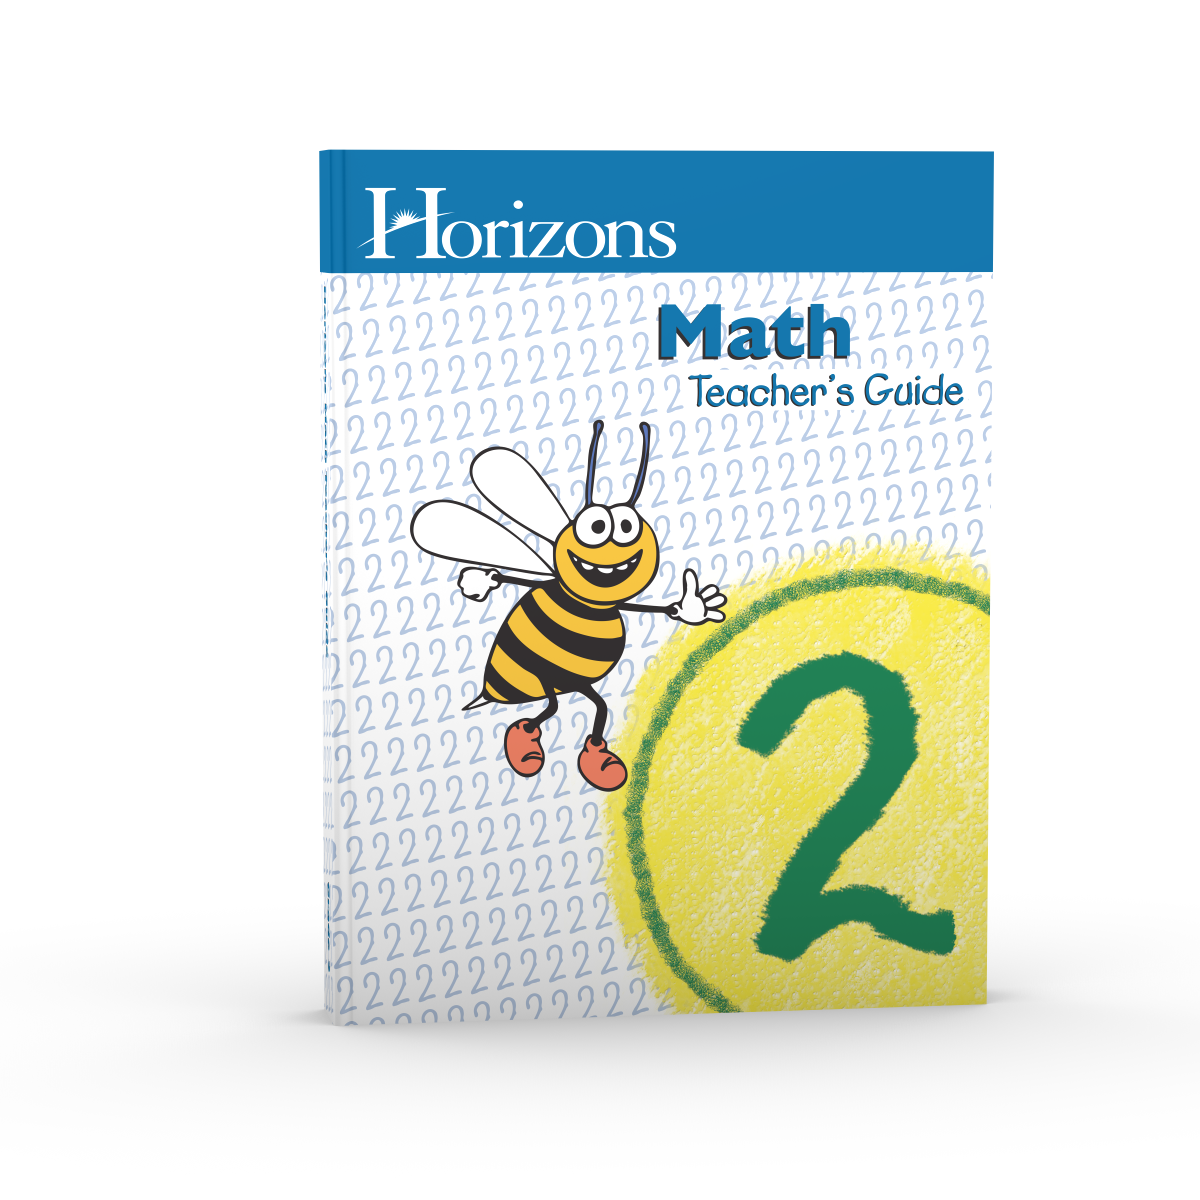 Horizons Math Teacher's Guide 2 (Used-Good) - Little Green Schoolhouse Books